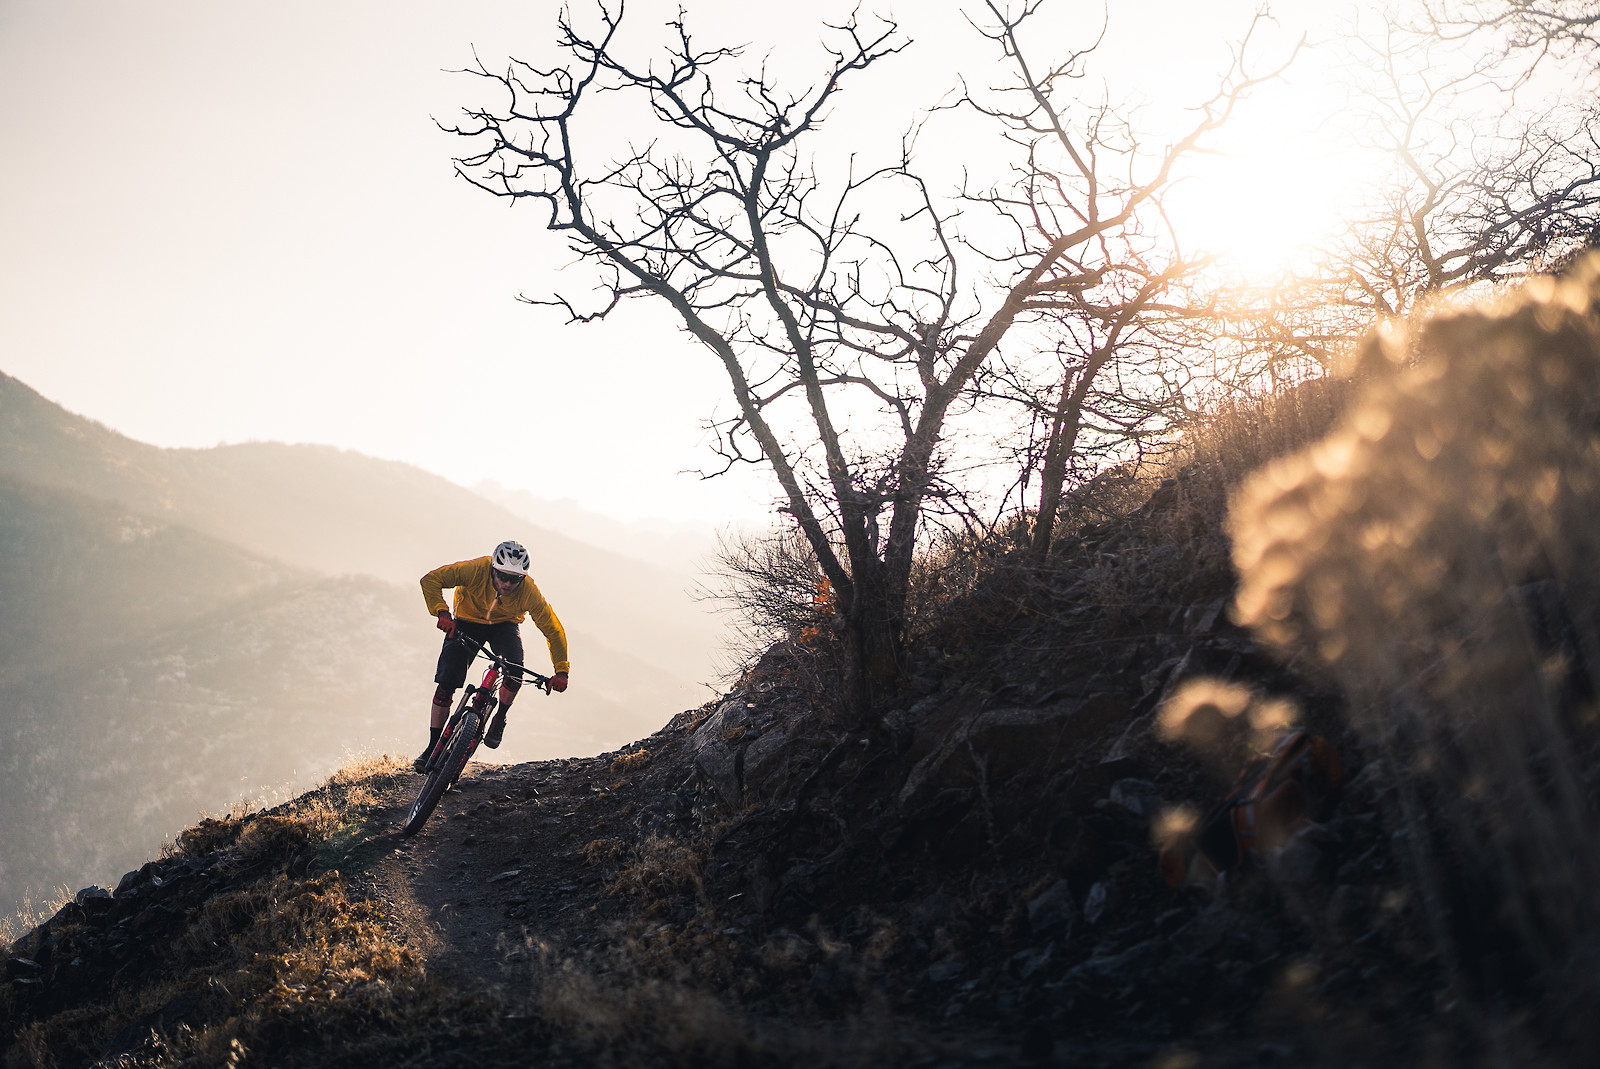 Don't blow the corner - Conor_Barry - Mountain Biking Pictures - Vital MTB